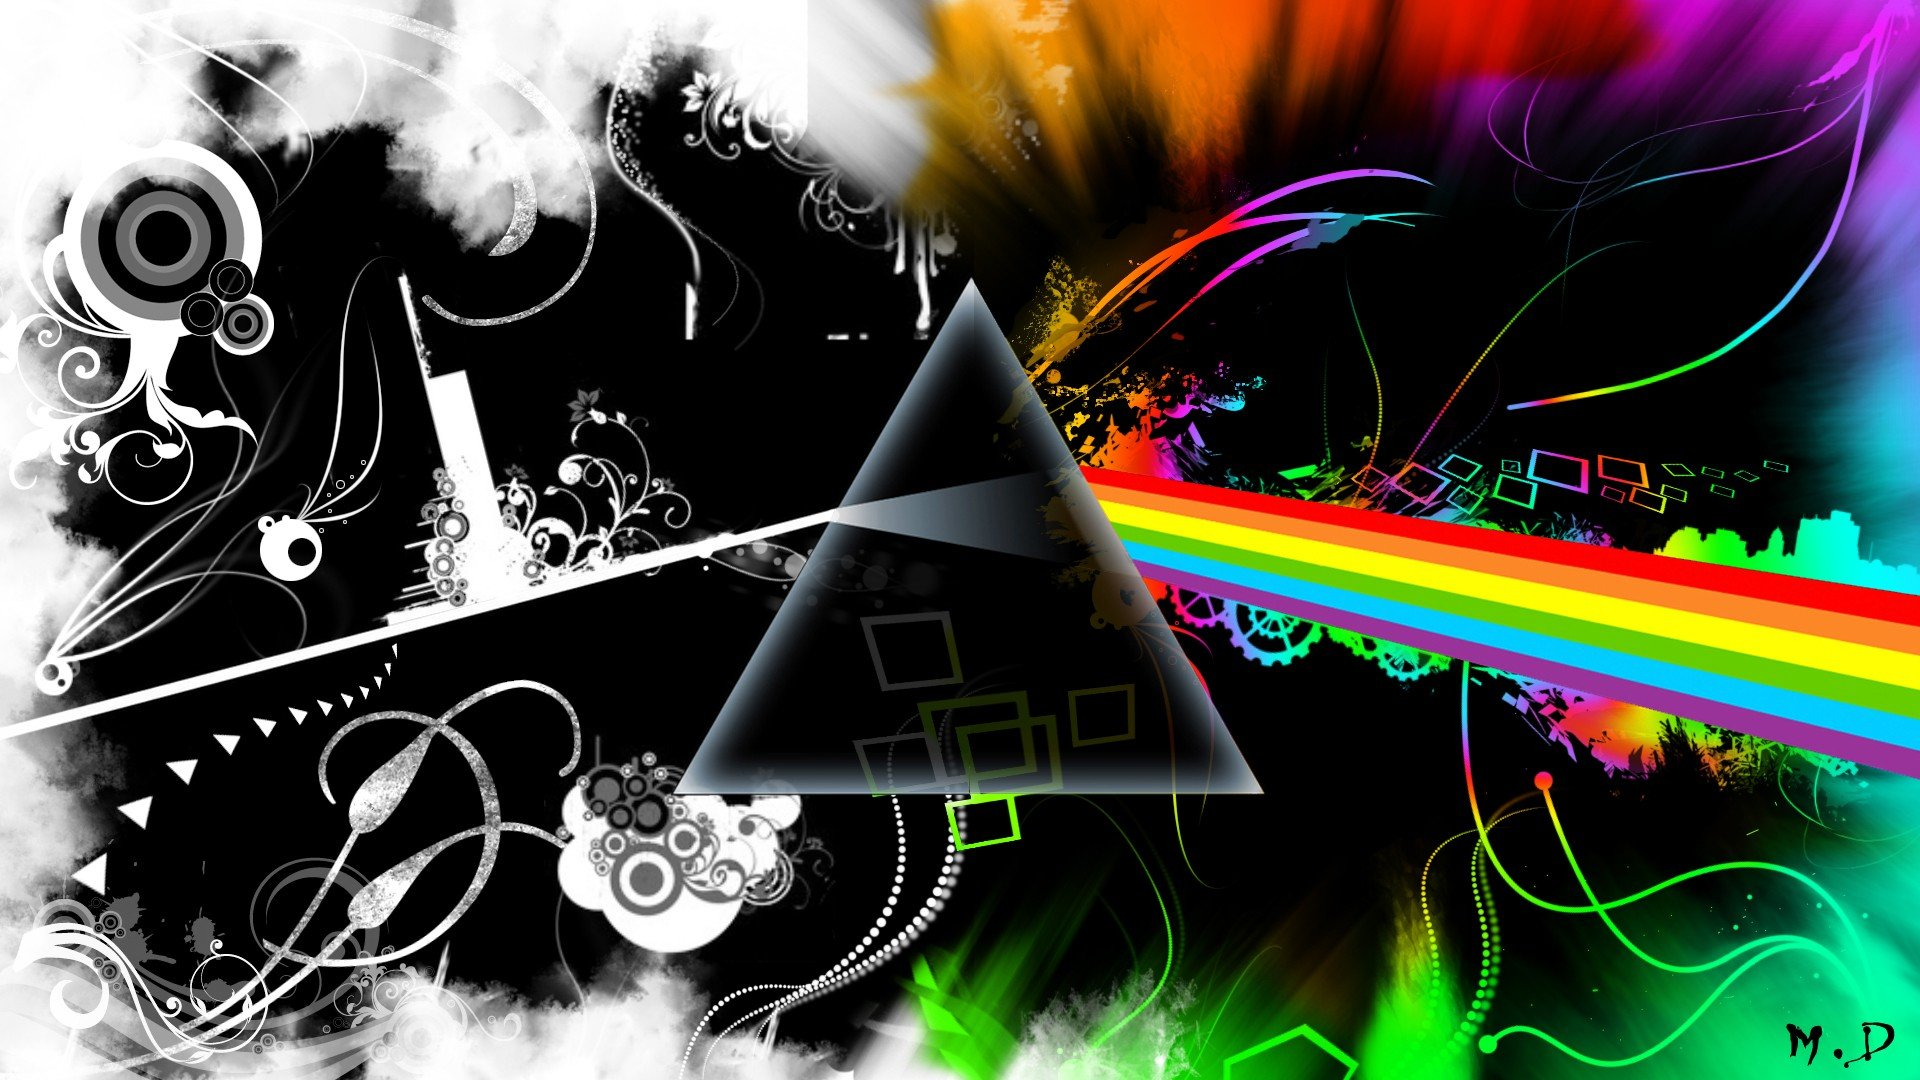 Abstract-music-Pink-Floyd-multicolor-Rock-music-The-Dark-Side-Of-wallpaper-wp3802155